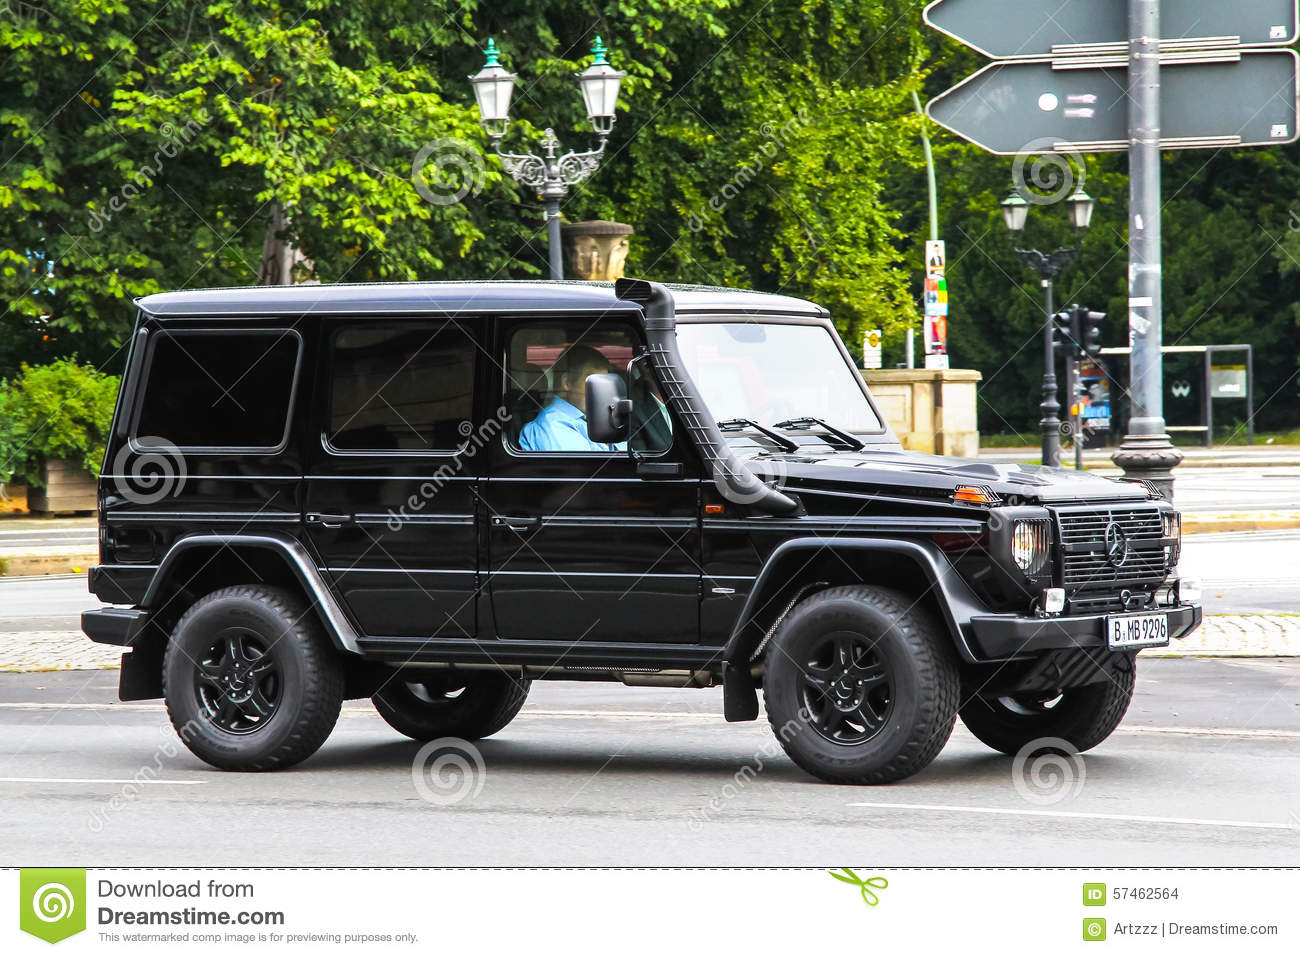 Mercedes benz g class price in germany fiat world test drive for Price of mercedes benz in germany